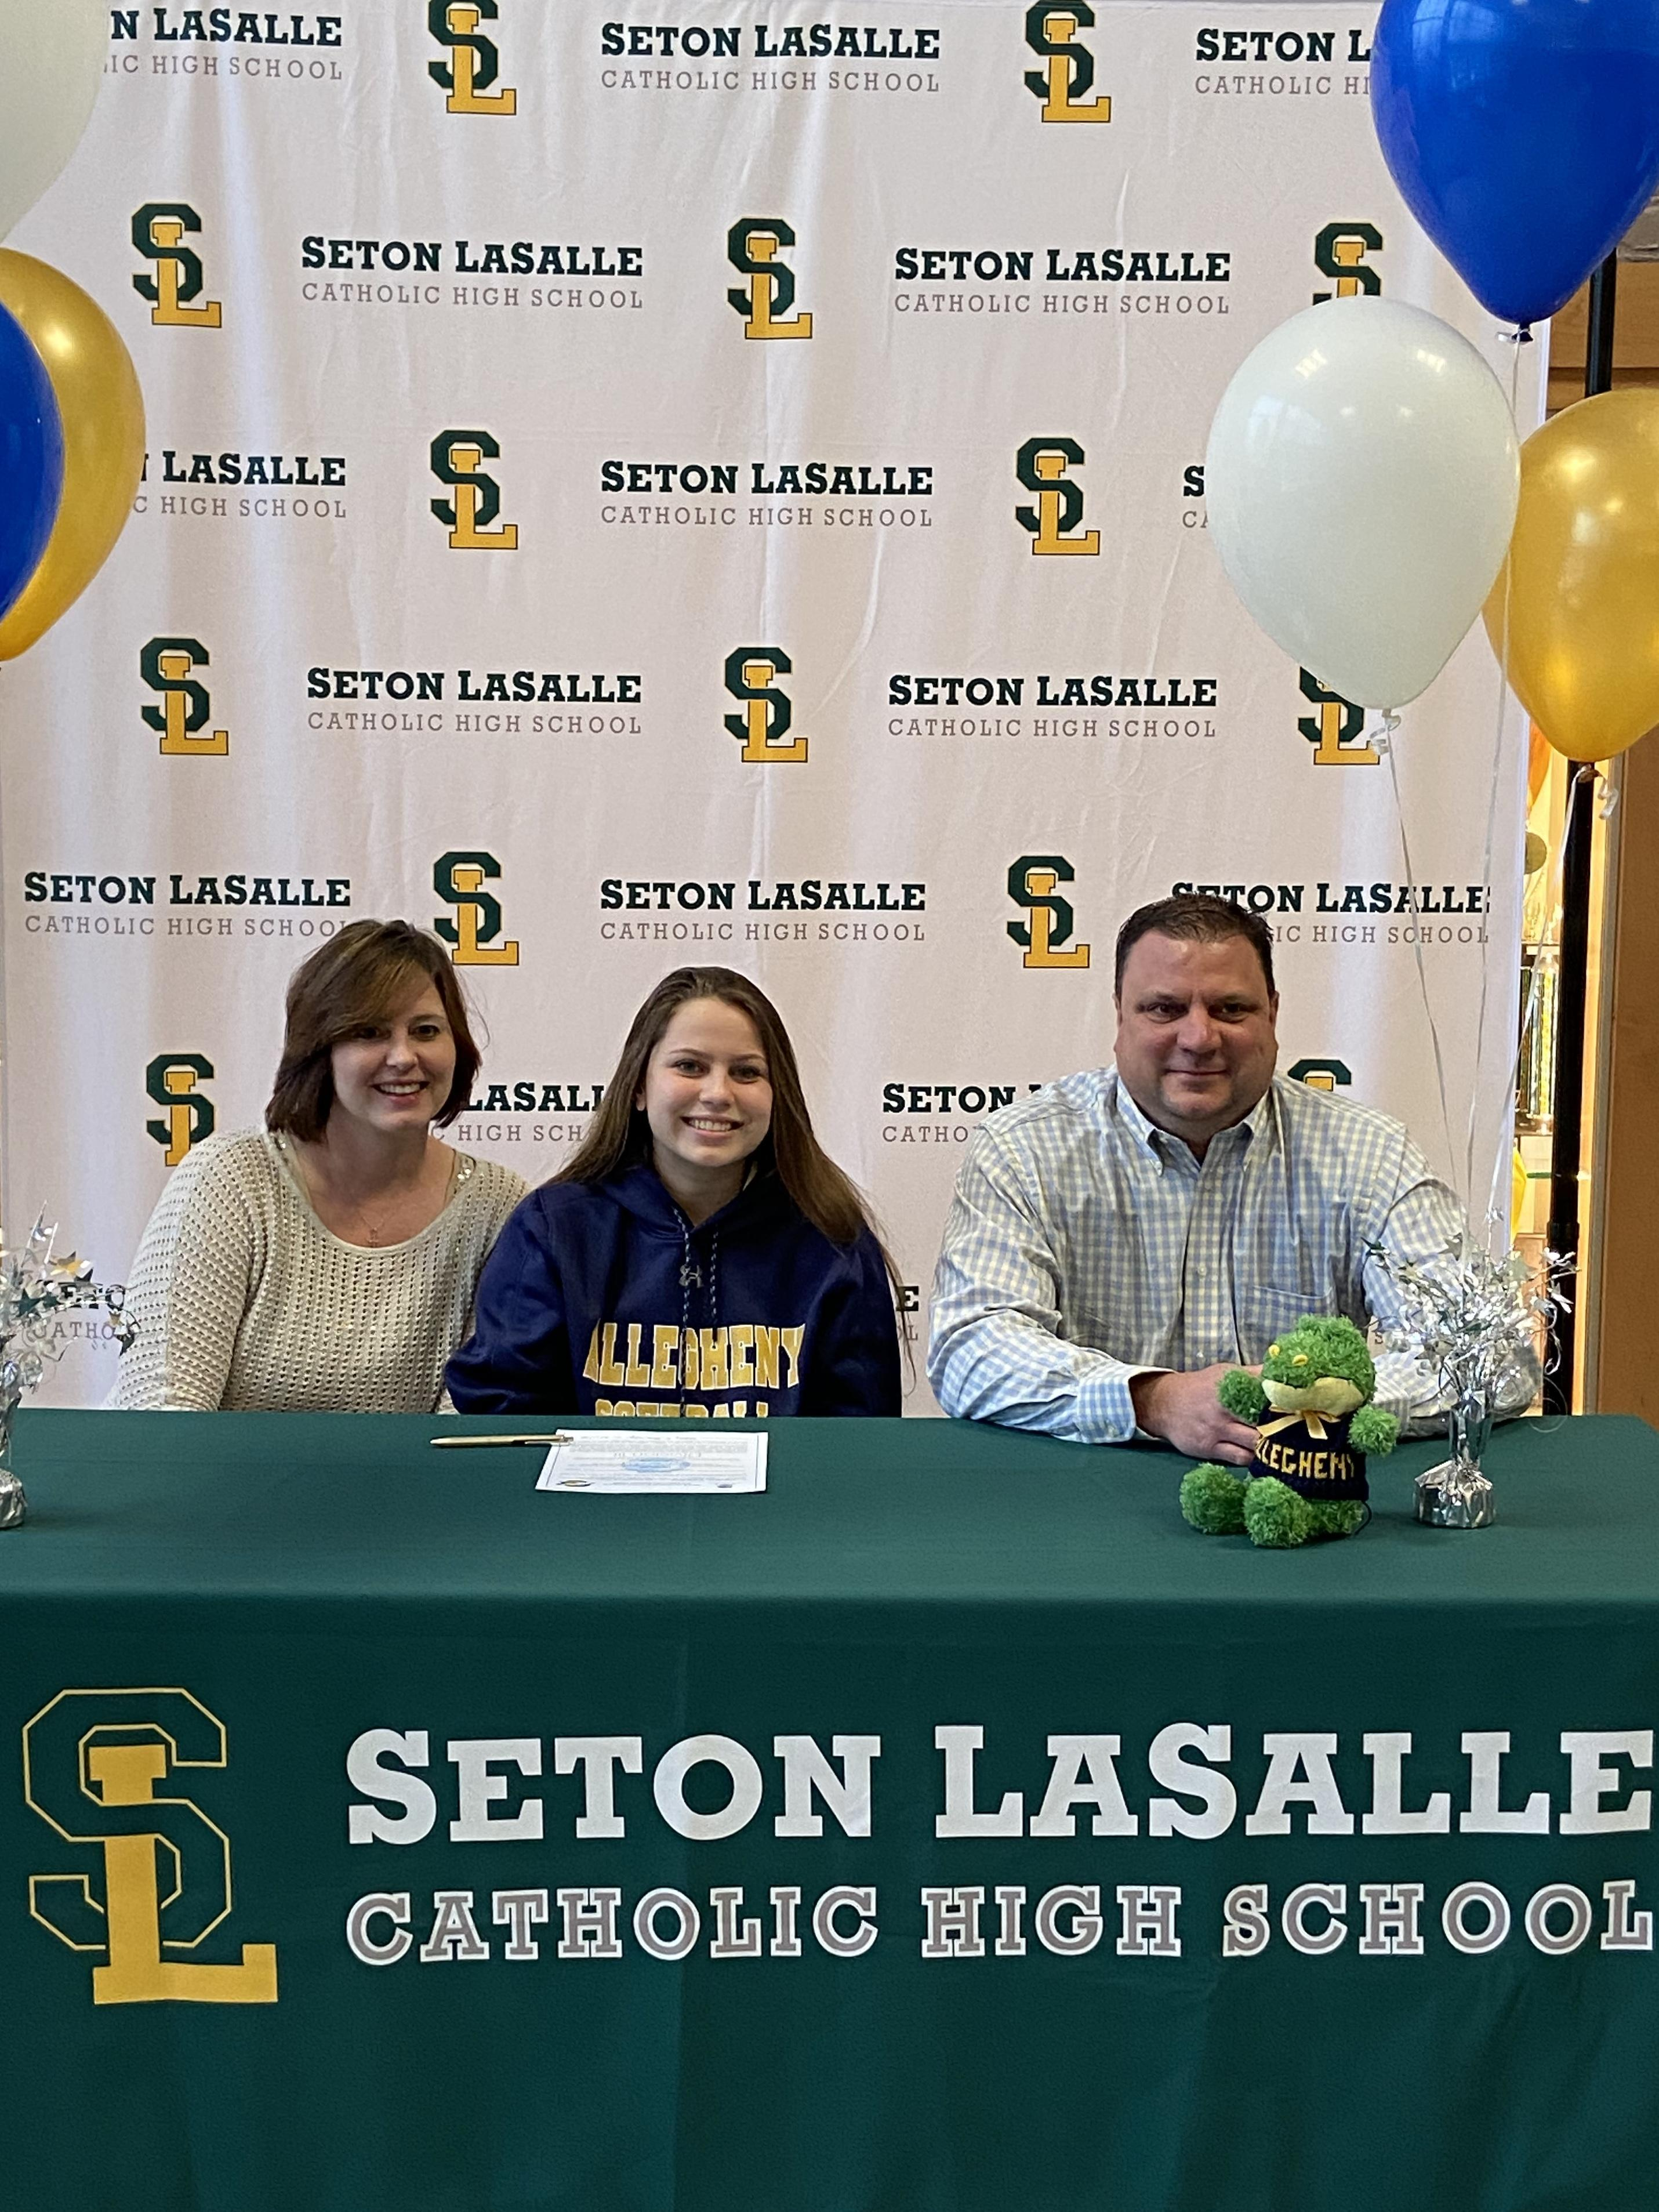 Class of 2020 senior signs her letter of intent to play collegiate softball at Allegheny College